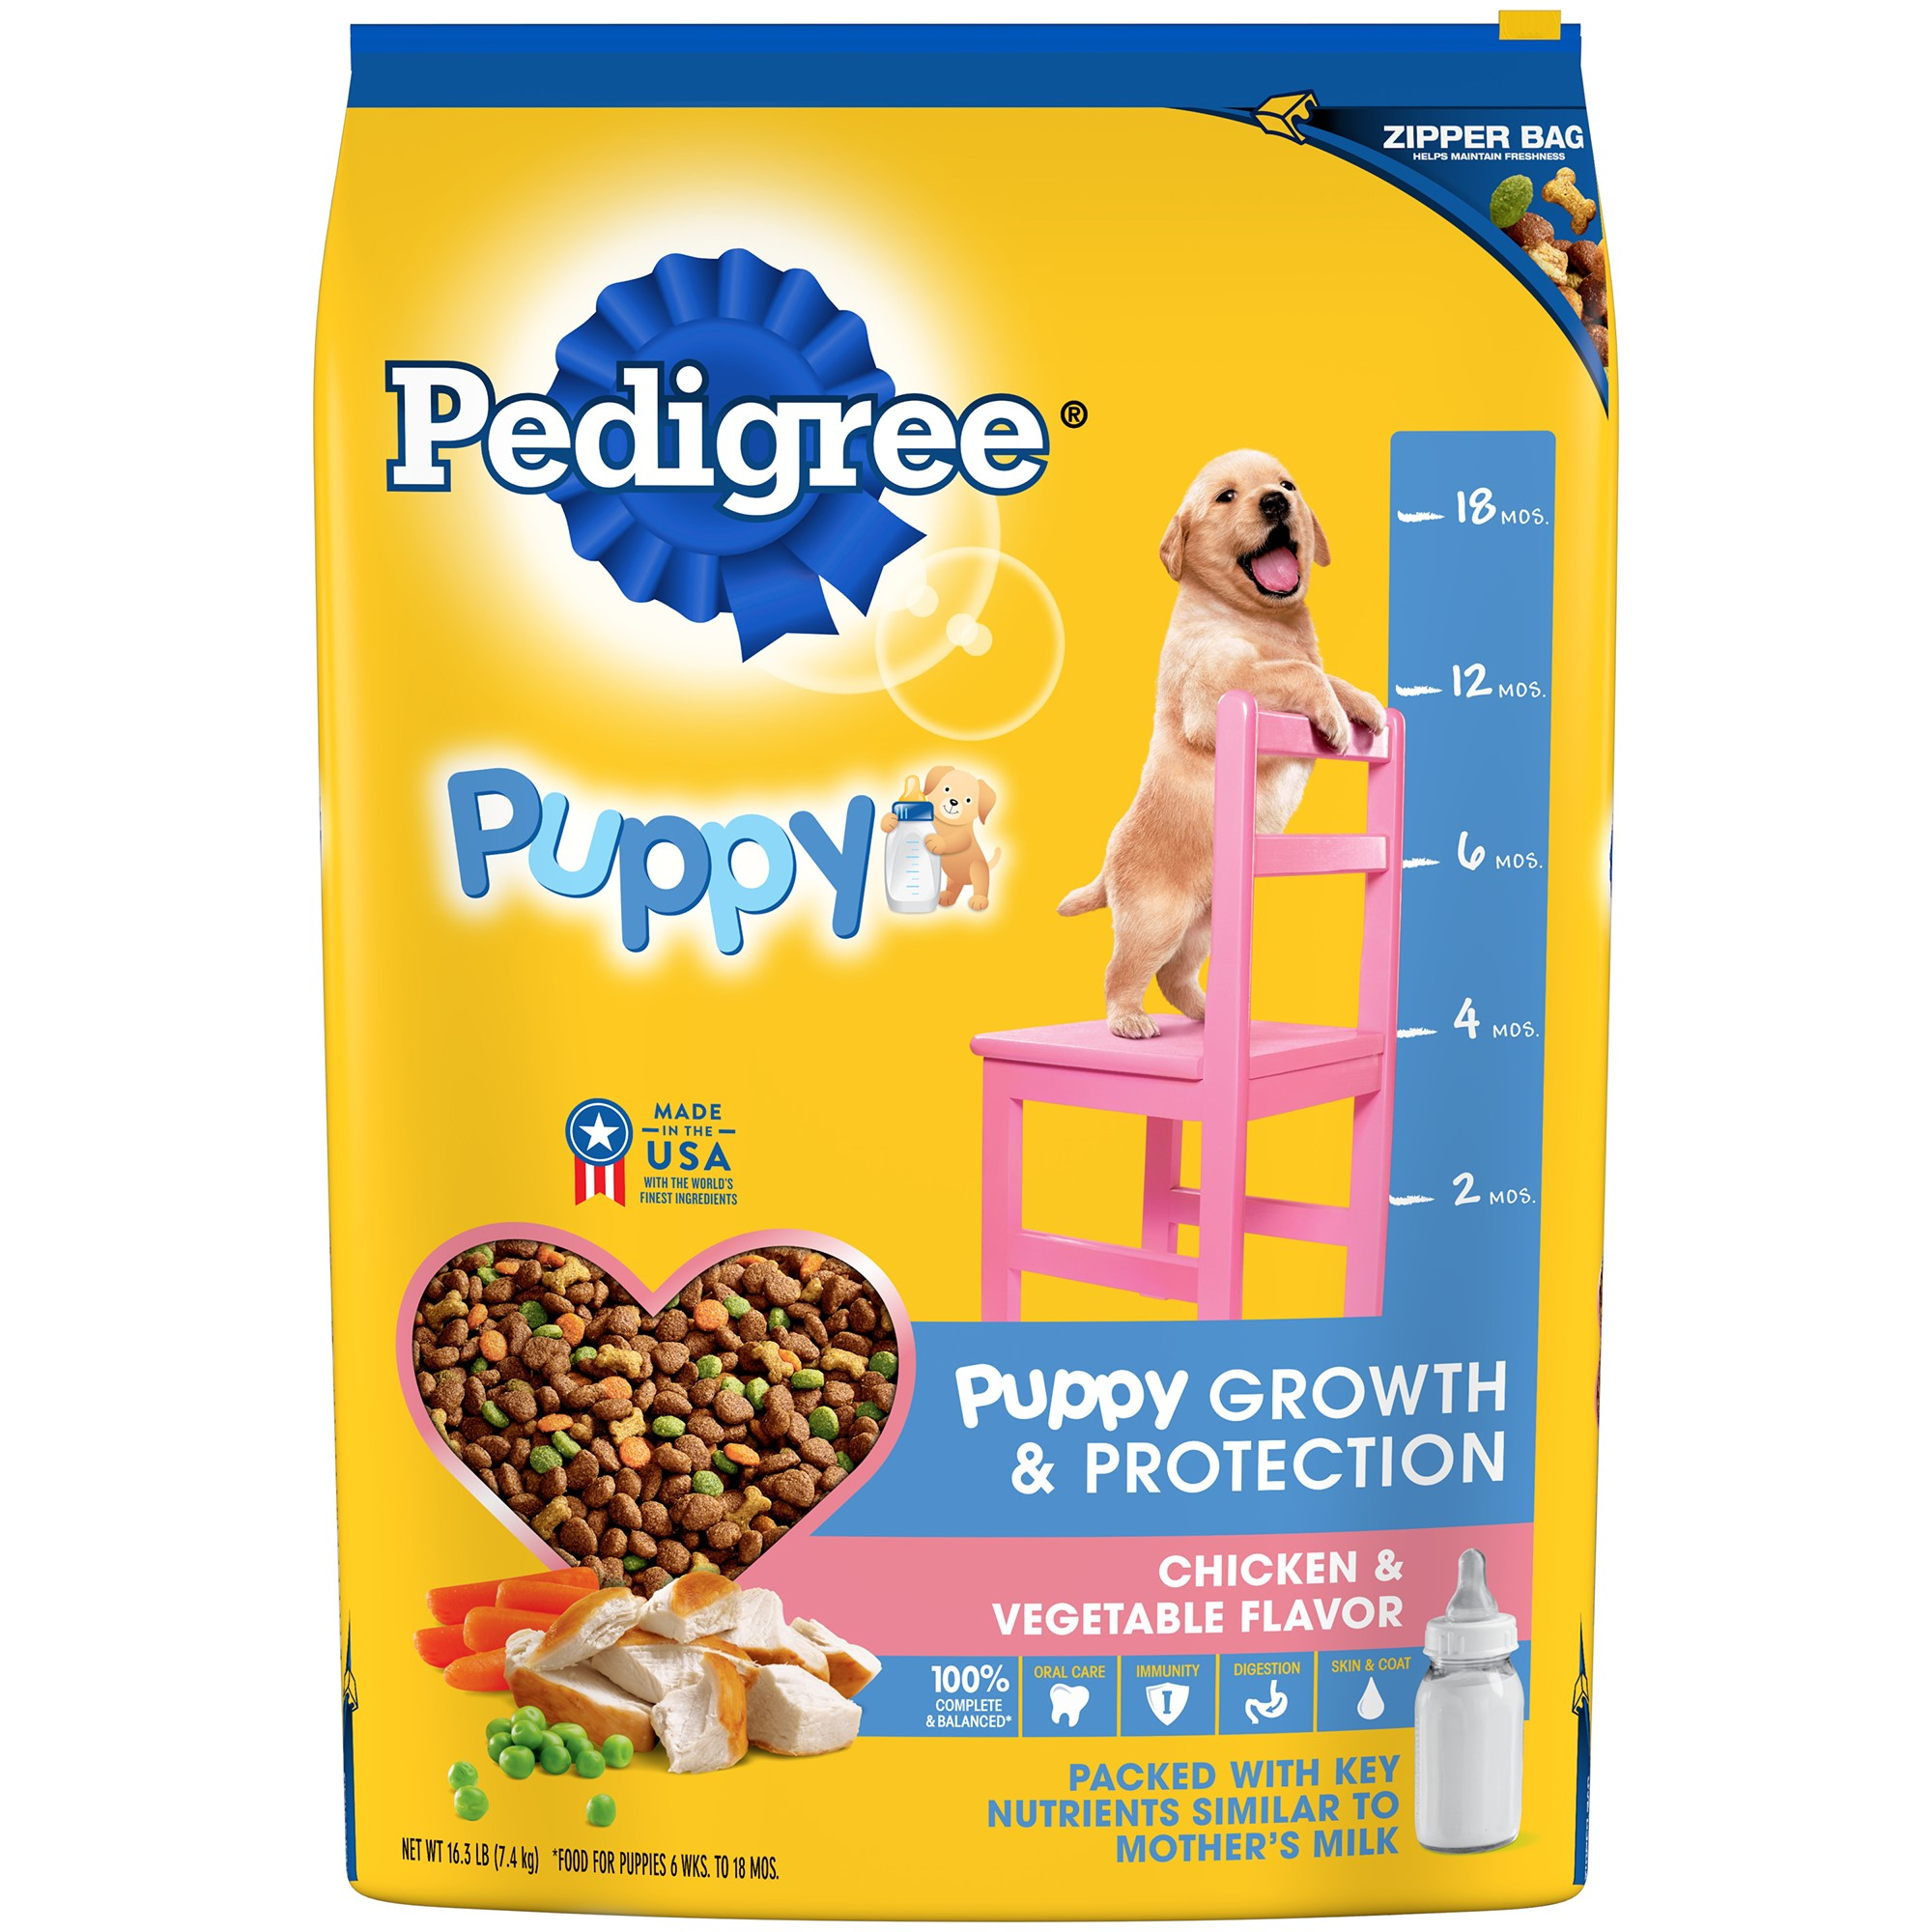 PEDIGREE Puppy Growth & Protection Chicken & Vegetable Flavor Dry Dog Food 16.3 Pounds